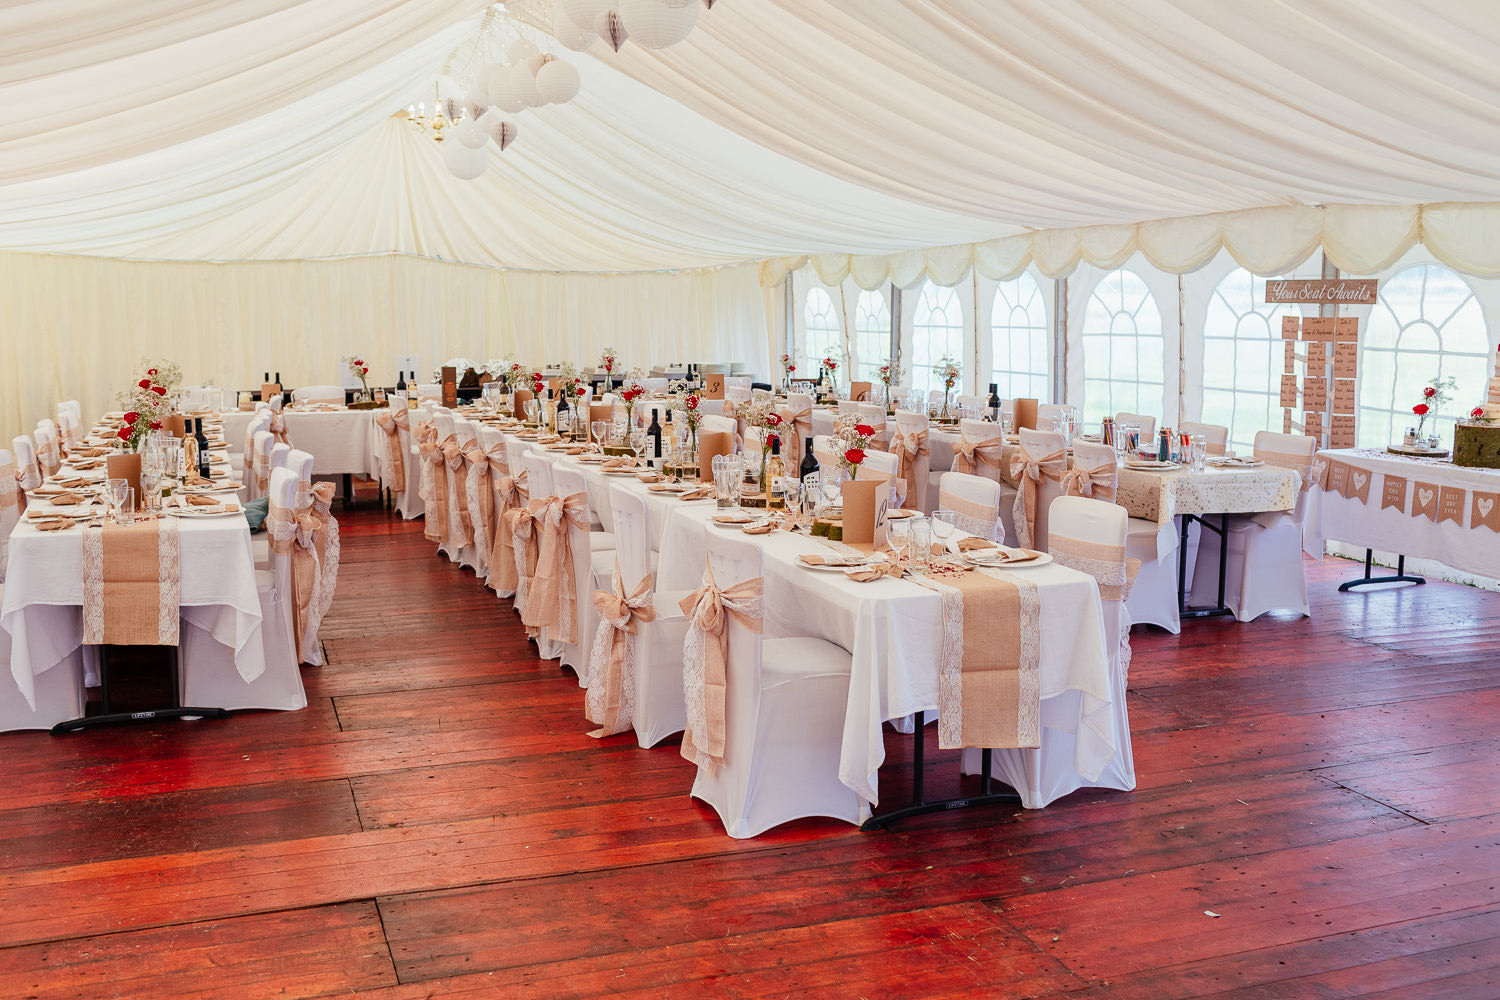 aberdeenshire farm wedding marquee reception dinner setup decor